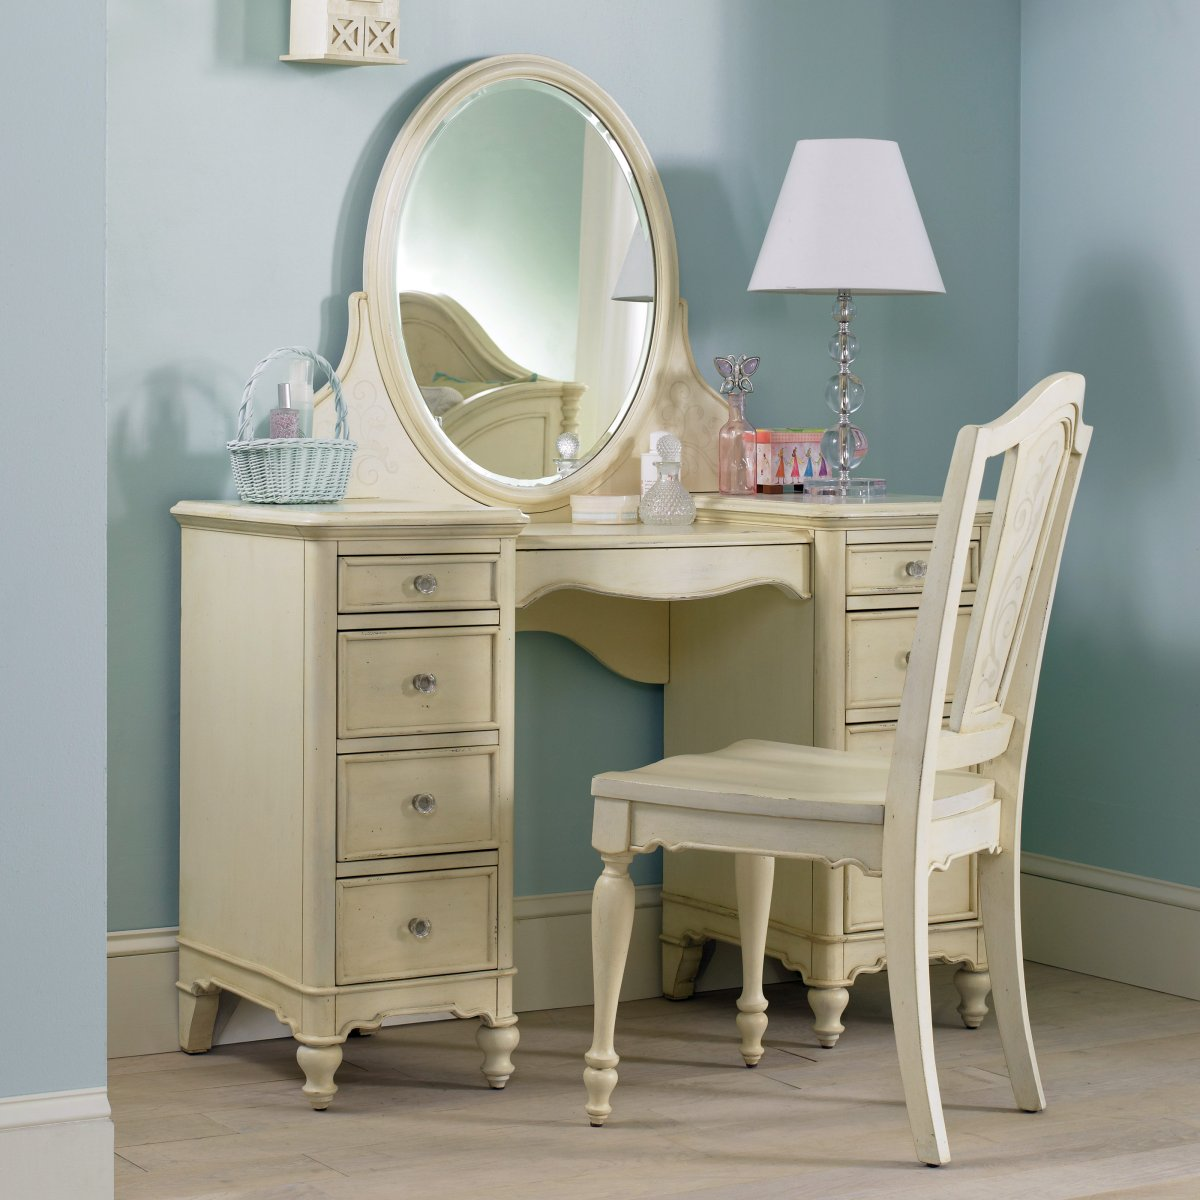 Picture of: Bedroom Vanity with Drawers Colors